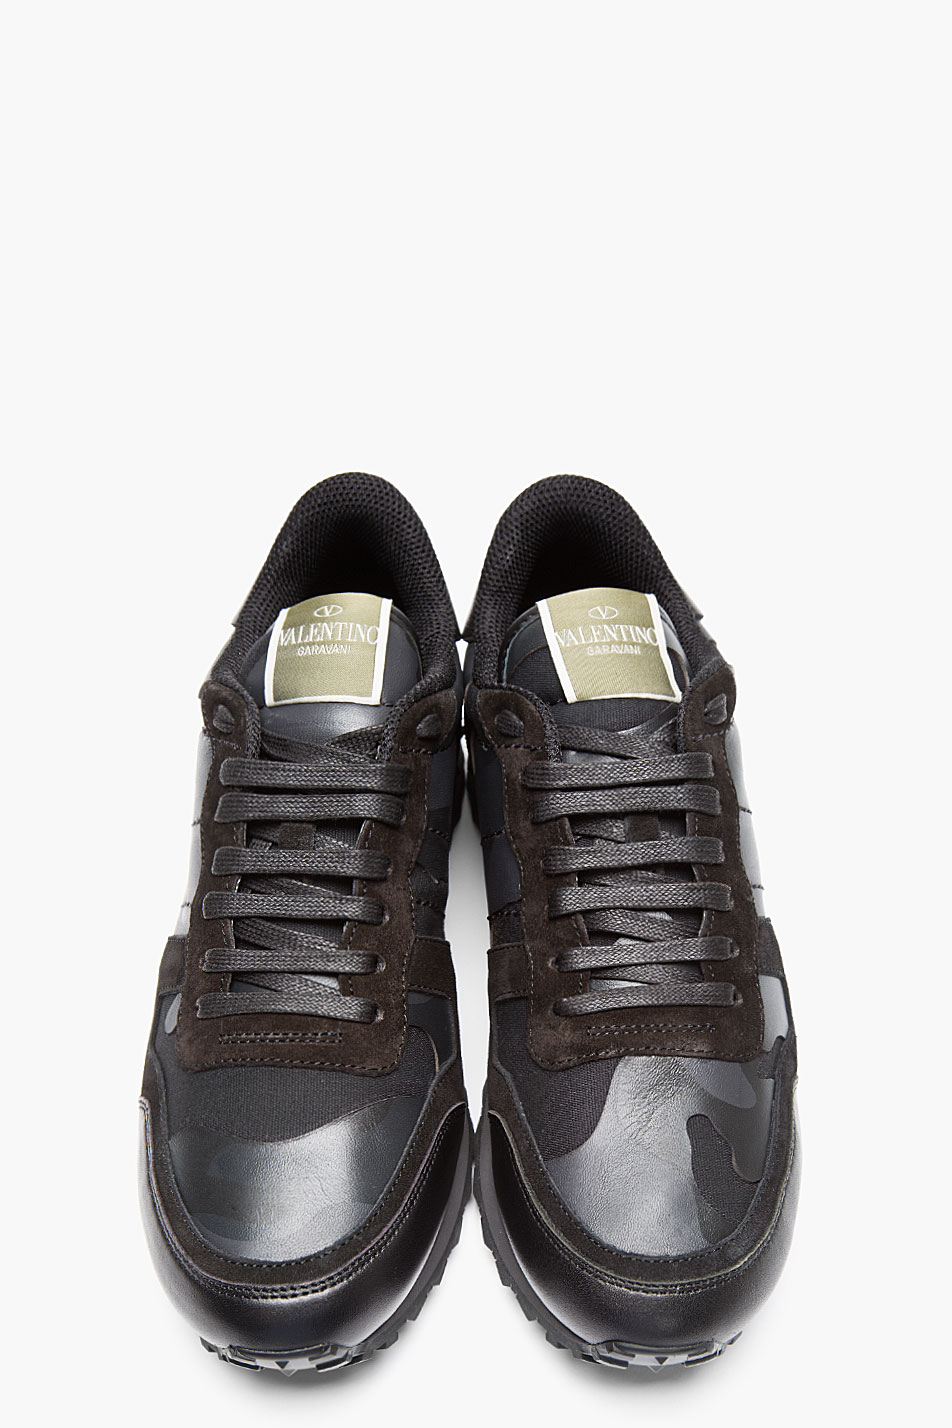 Valentino Black Leather Camo Print Sneakers In Black For